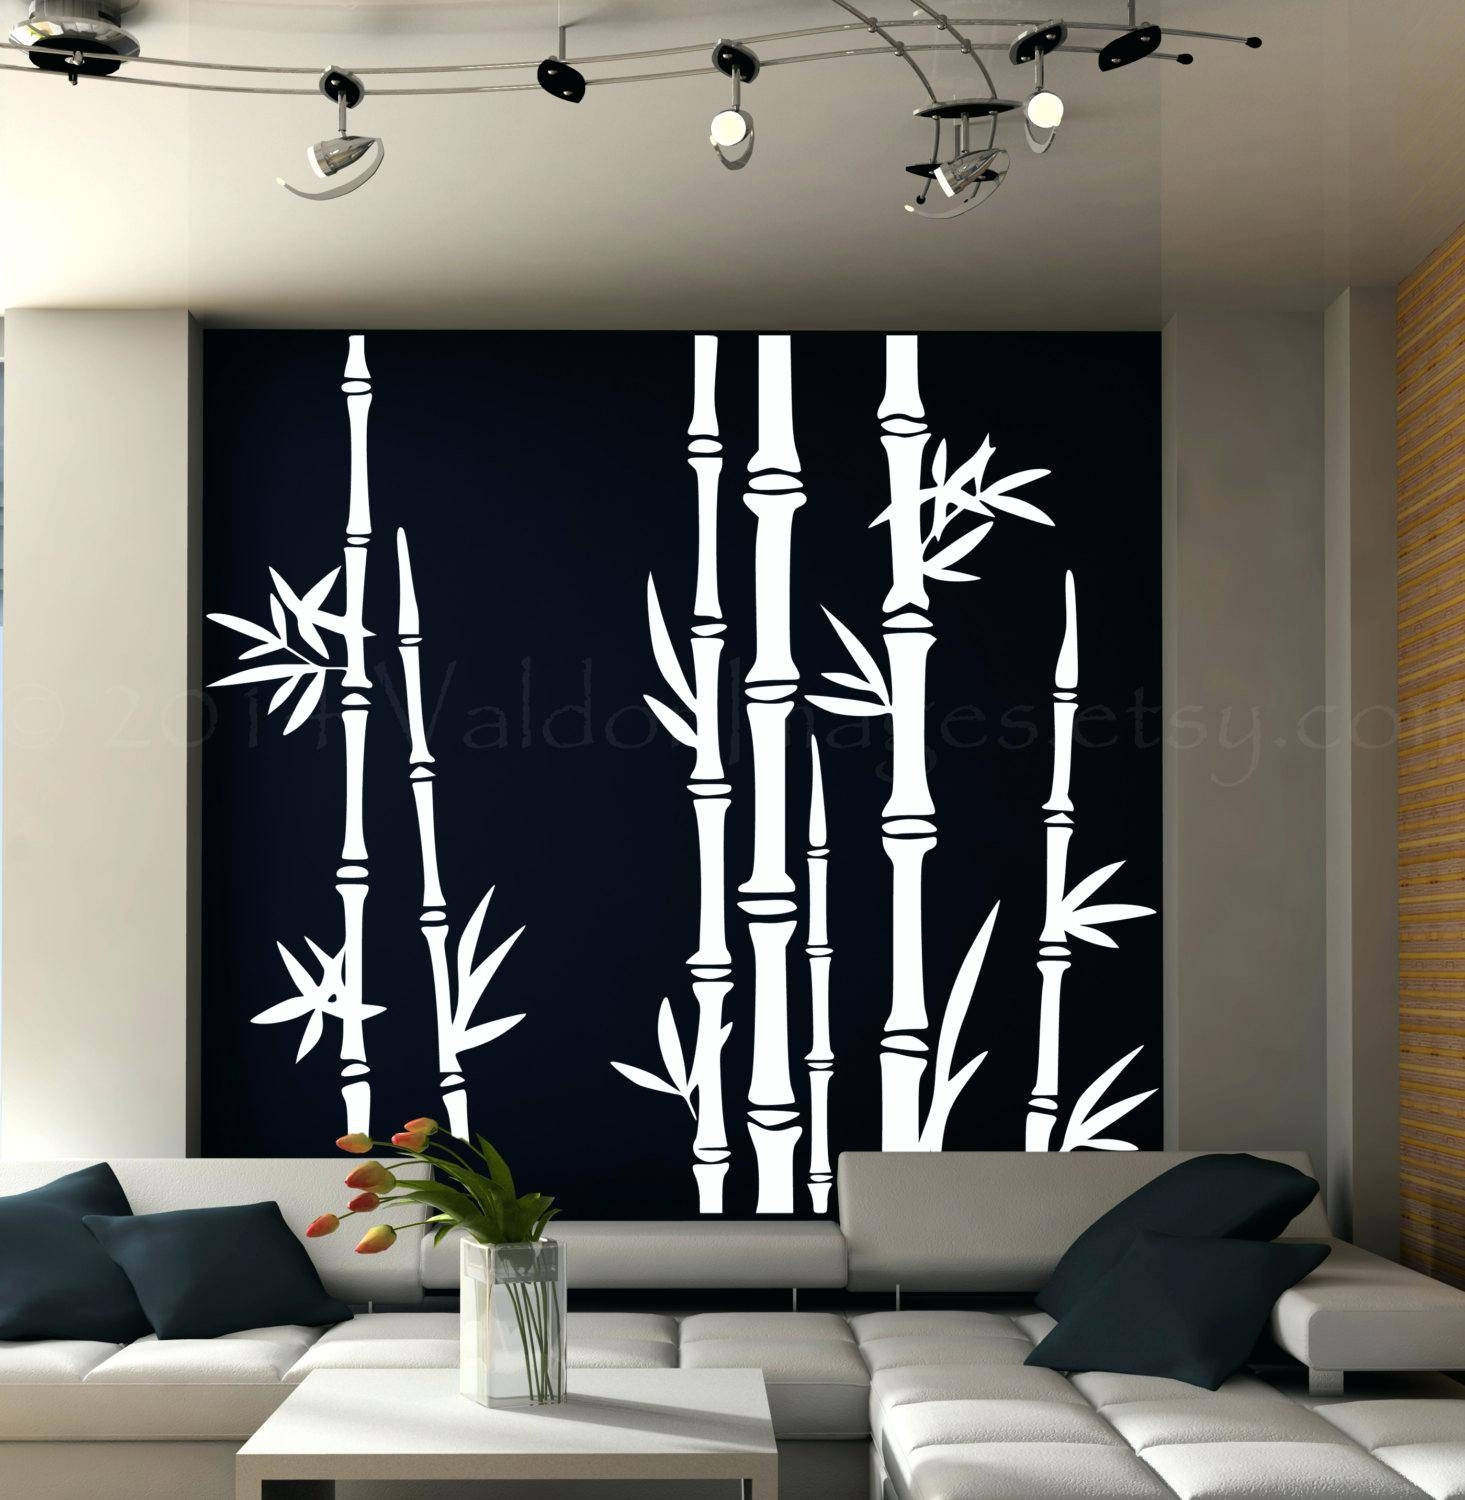 Wall Ideas: Asian Wall Decor. Asian Fans Wall Decor (View 8 of 30)